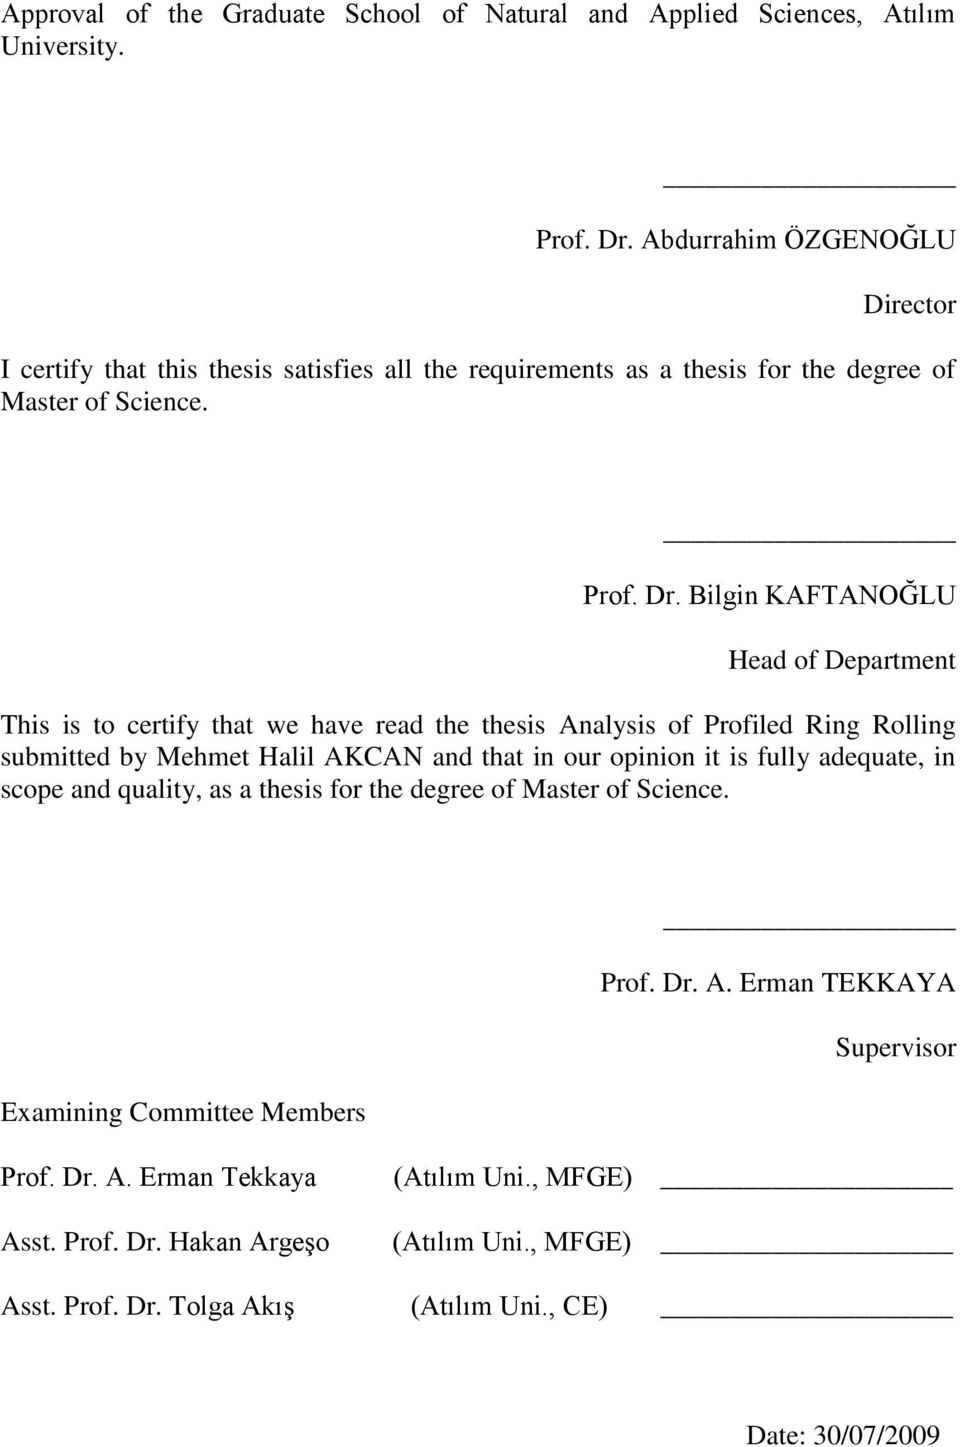 Bilgin KAFTANOĞLU Head of Department This is to certify that we have read the thesis Analysis of Profiled Ring Rolling submitted by Mehmet Halil AKCAN and that in our opinion it is